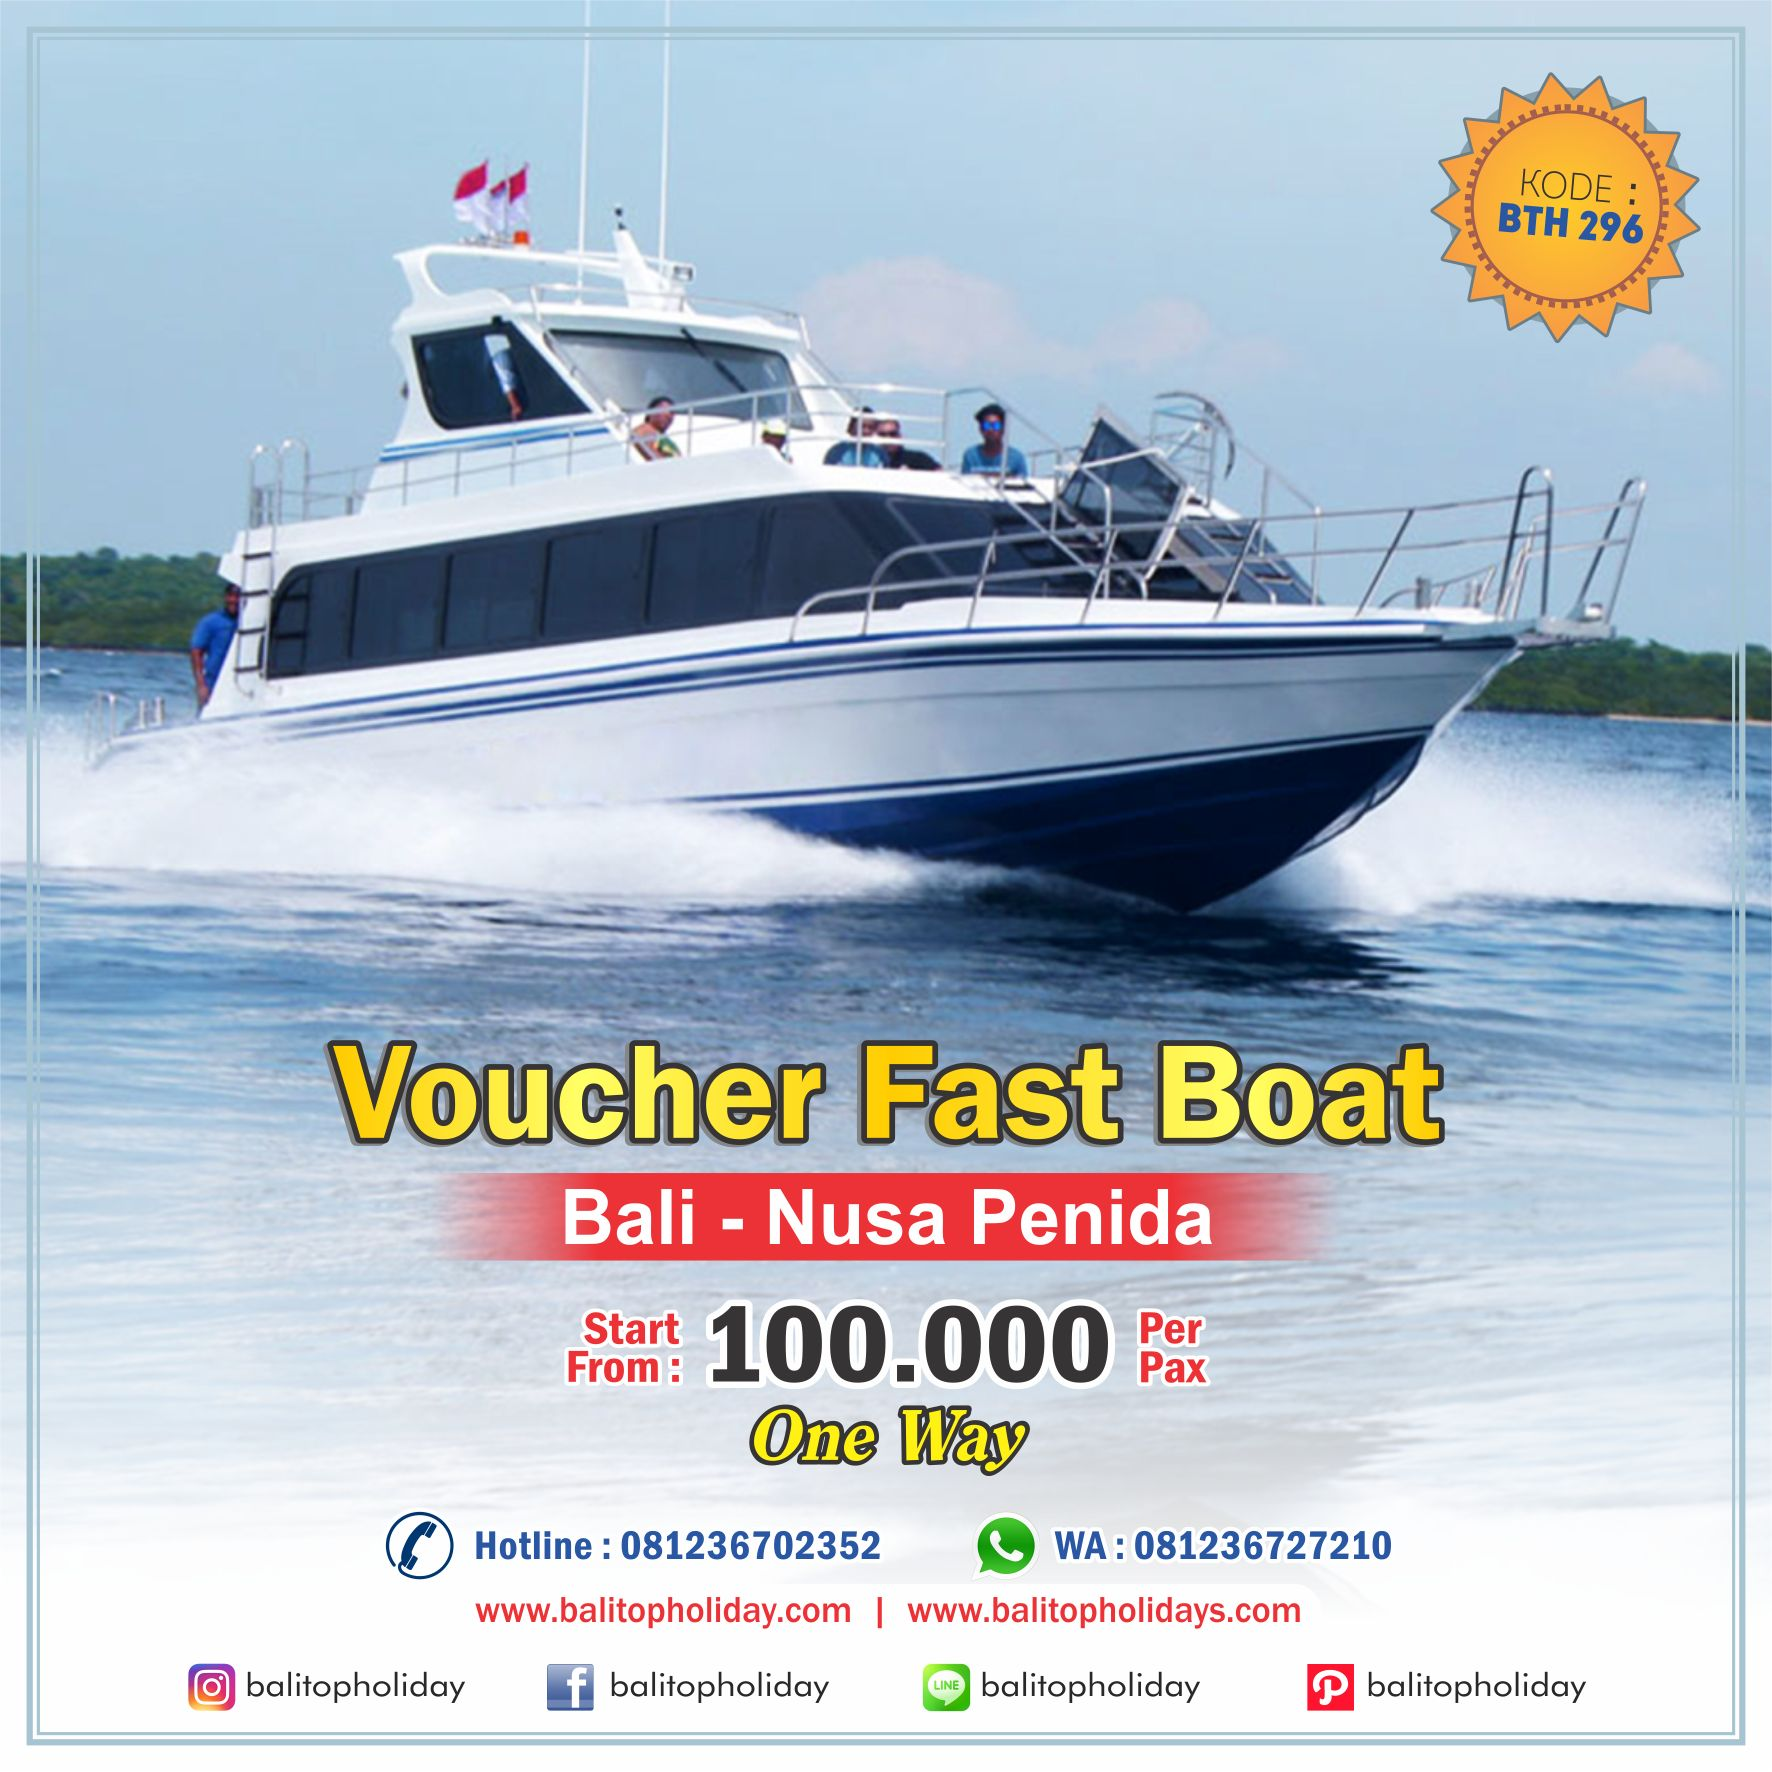 Voucher-Fast-Boat-Nusa-PEnida Best Top Trip Bali Ke Nusa Penida Secret This Year @capturingmomentsphotography.net